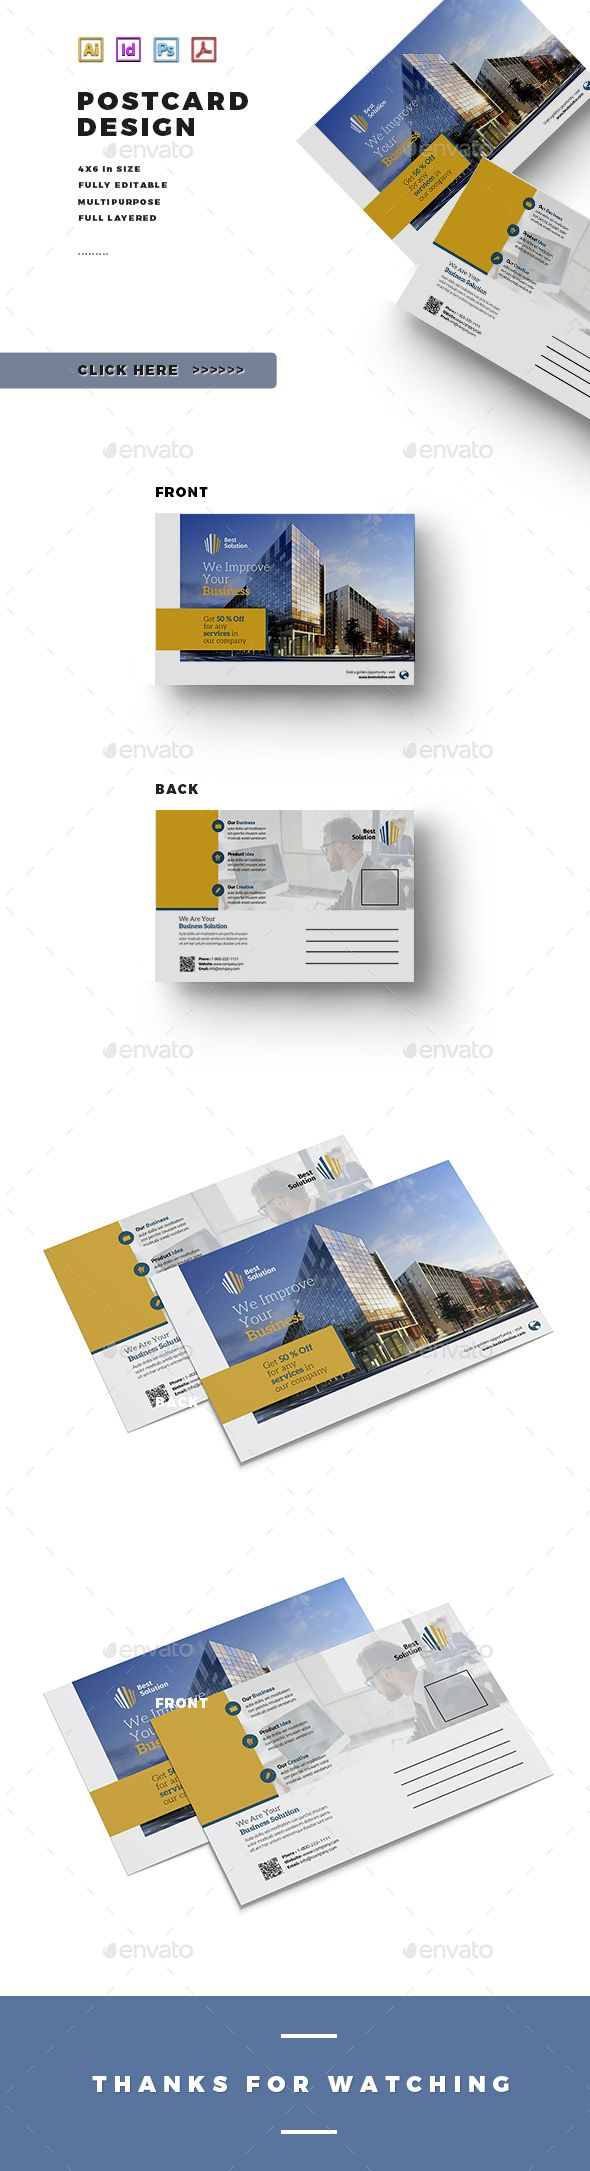 240 best Postcard Templates images on Pinterest | Postcard template ...